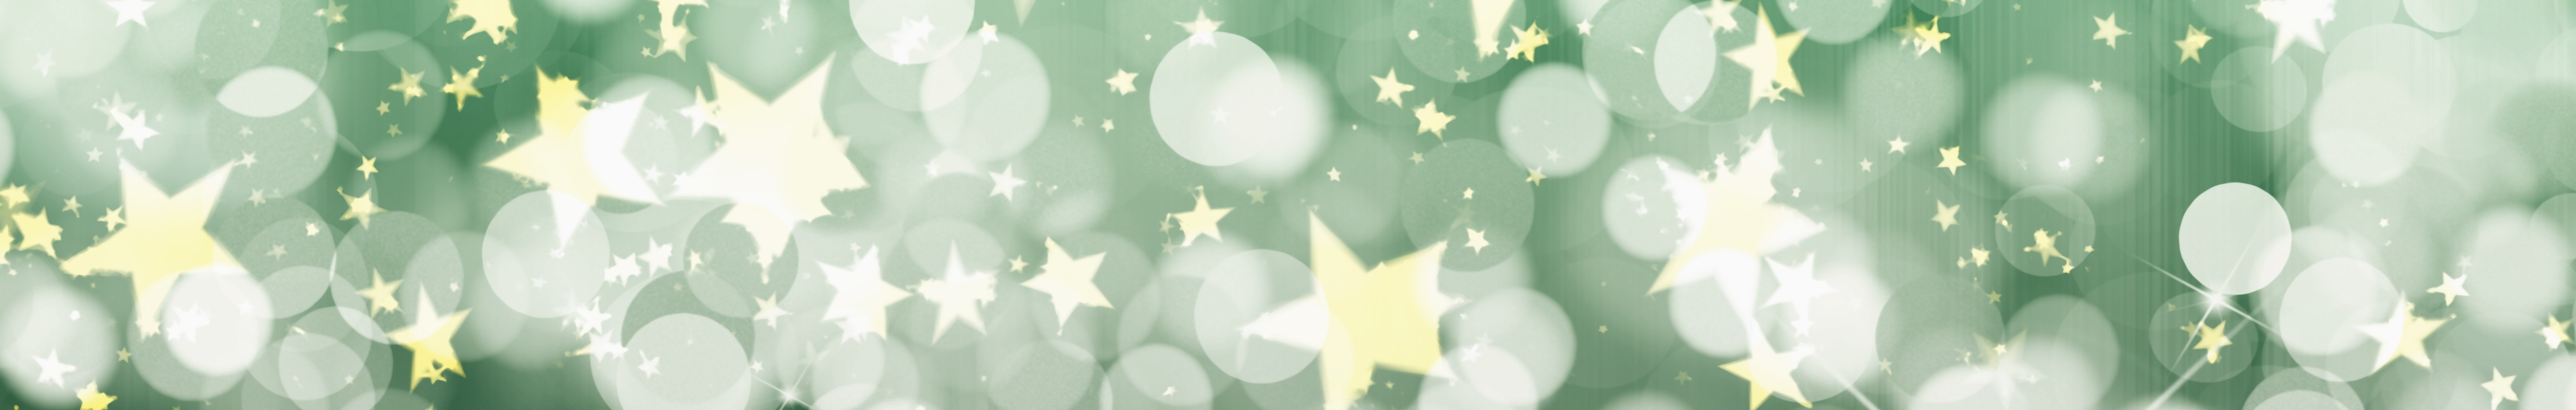 Stars and bubble pattern on a green background